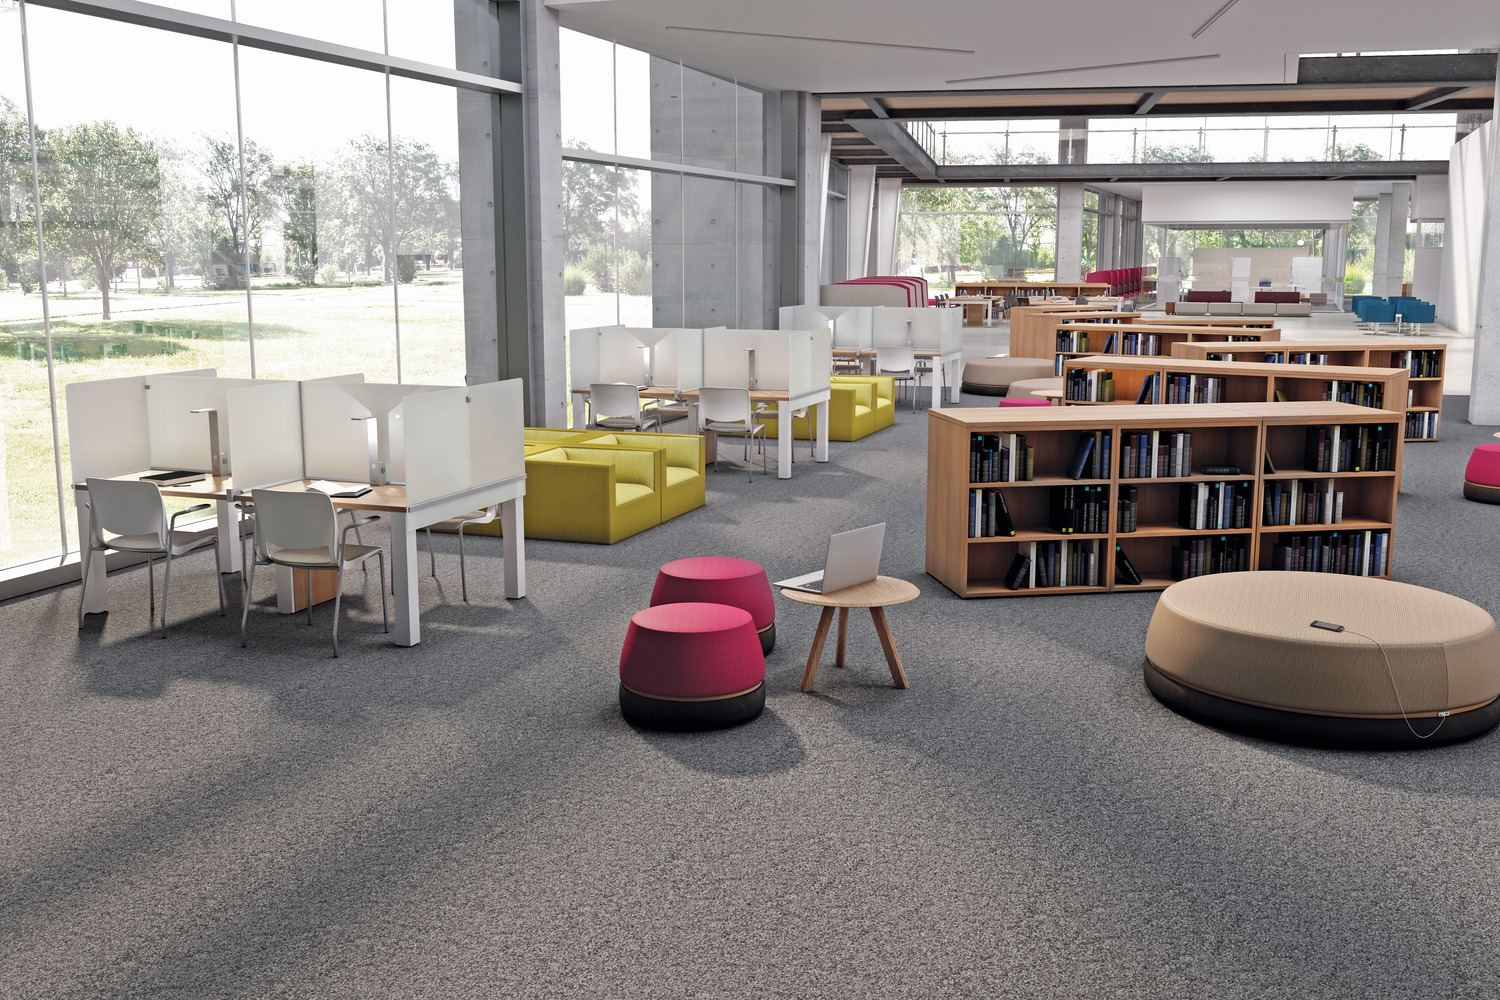 furniture for libraries. Thesis Library Tables Divided By Translucent Glass Screens Minimize Distraction While Admitting Daylight. Crisp Lines Of The Tabletop And Table Legs Furniture For Libraries